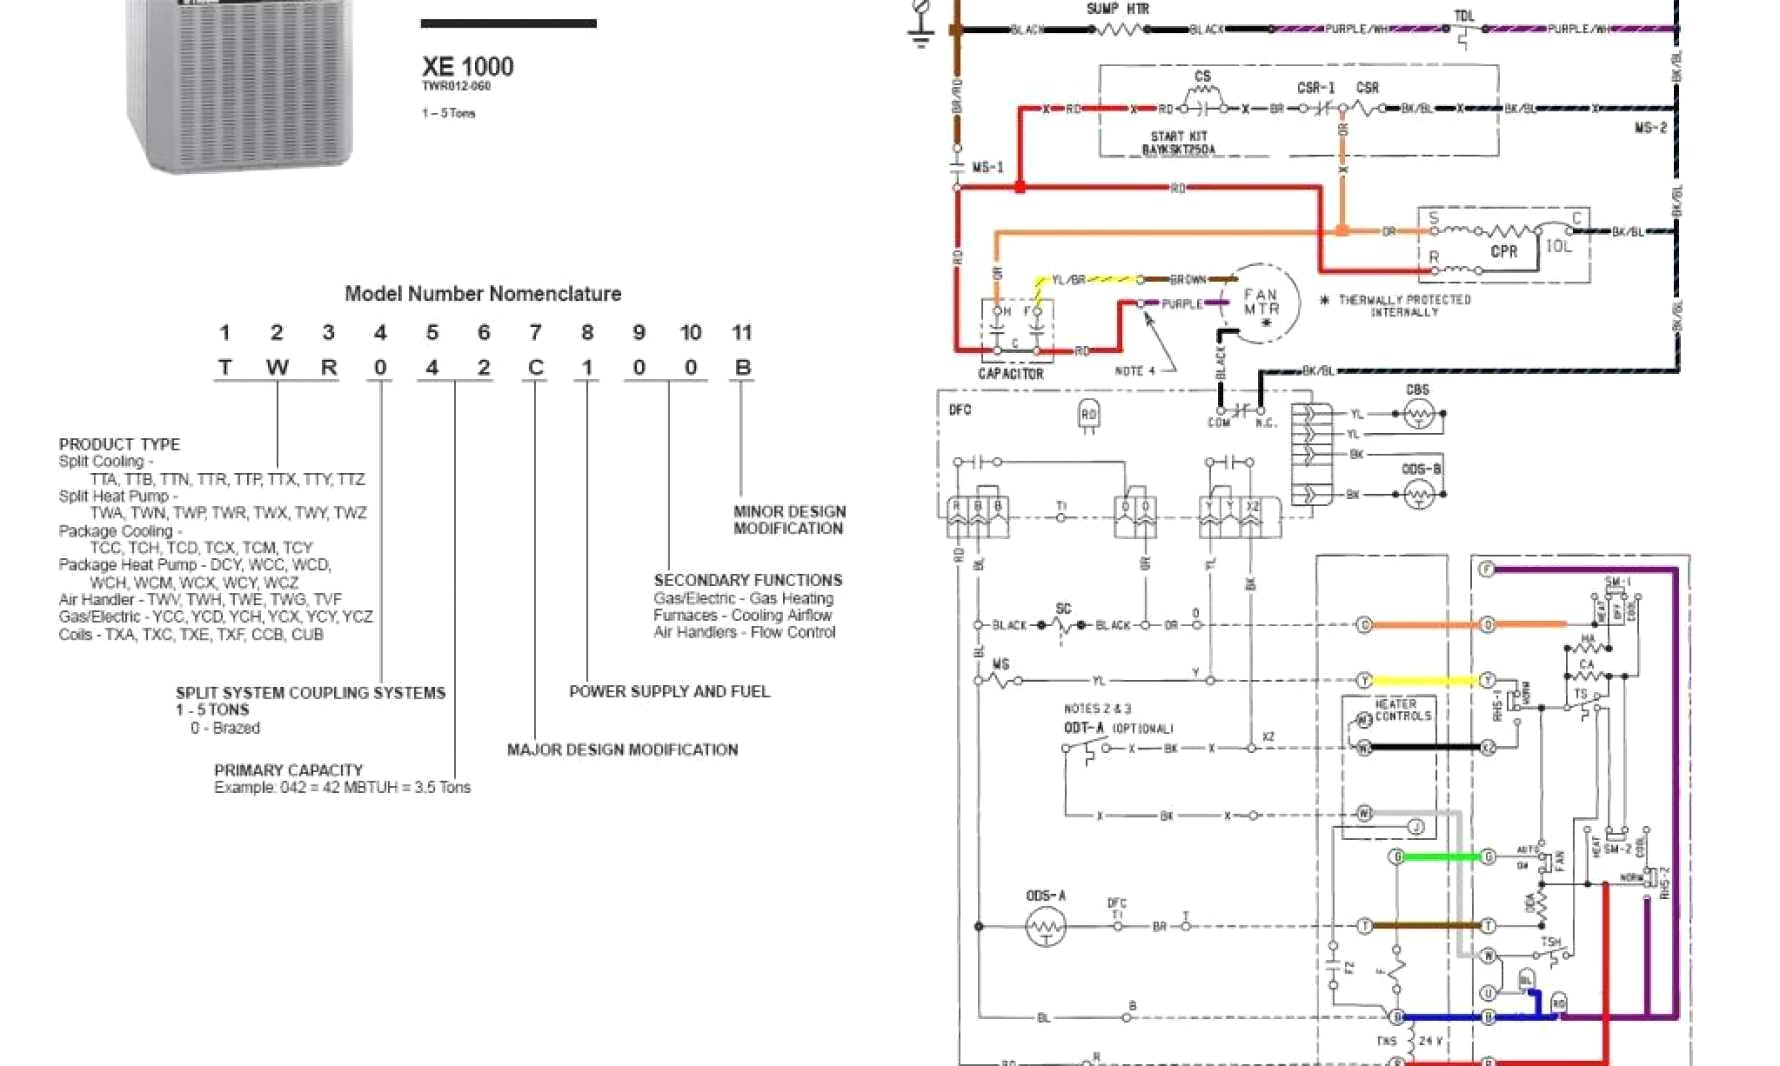 trane thermostat wiring diagram electrical wiring diagrams rh cytrus co  Trane XL16i trane xl16i wiring diagram